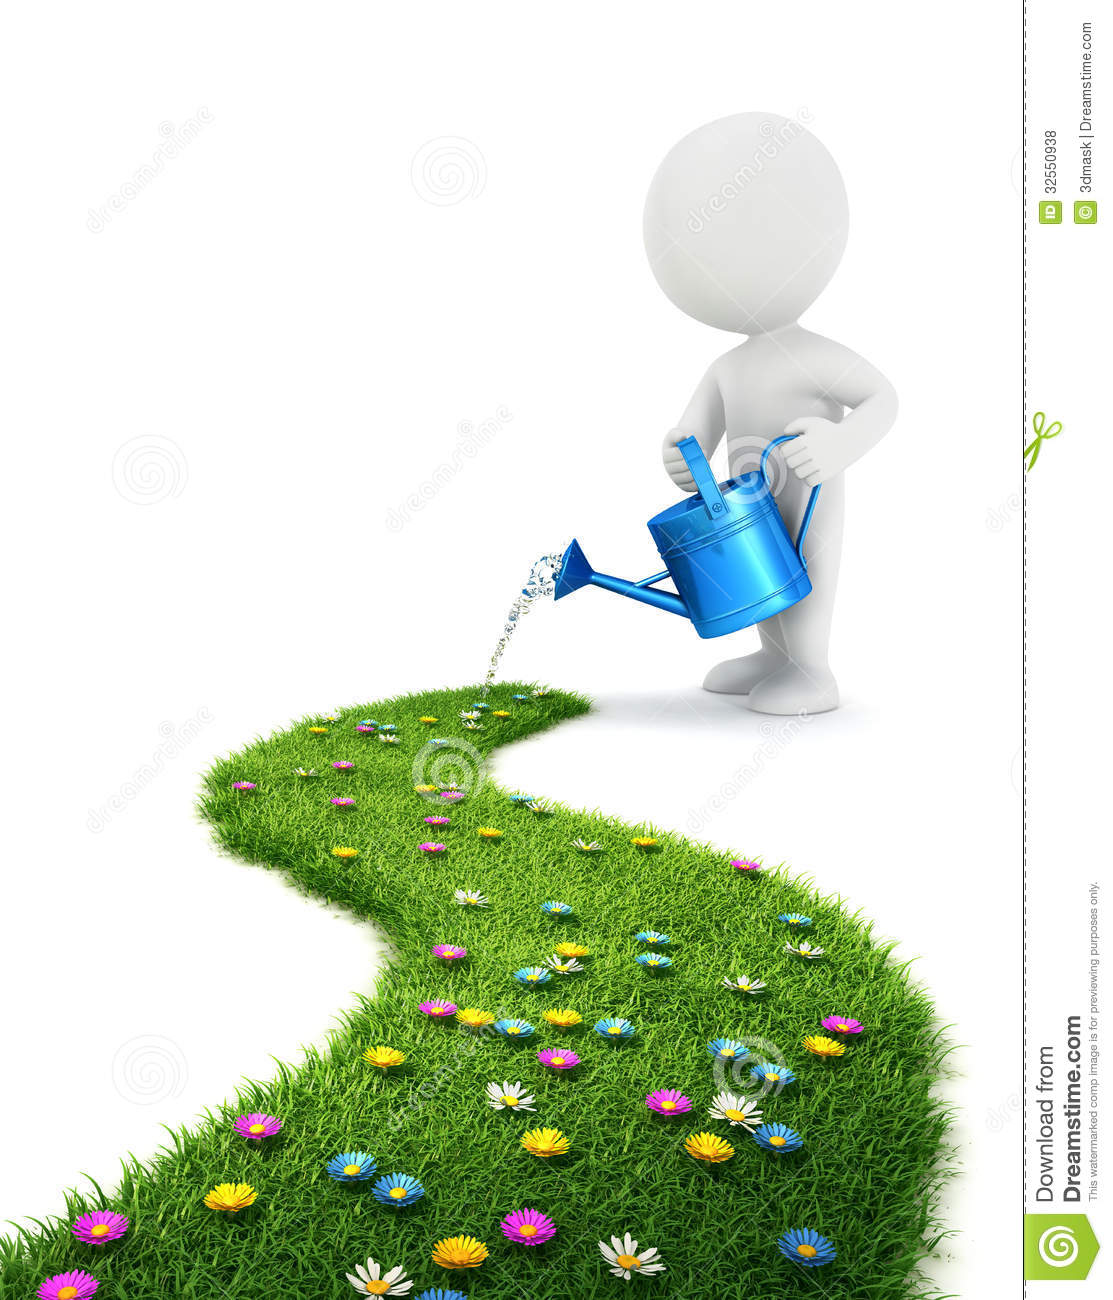 Watering Can Pictures, Images and Stock Photos - iStock